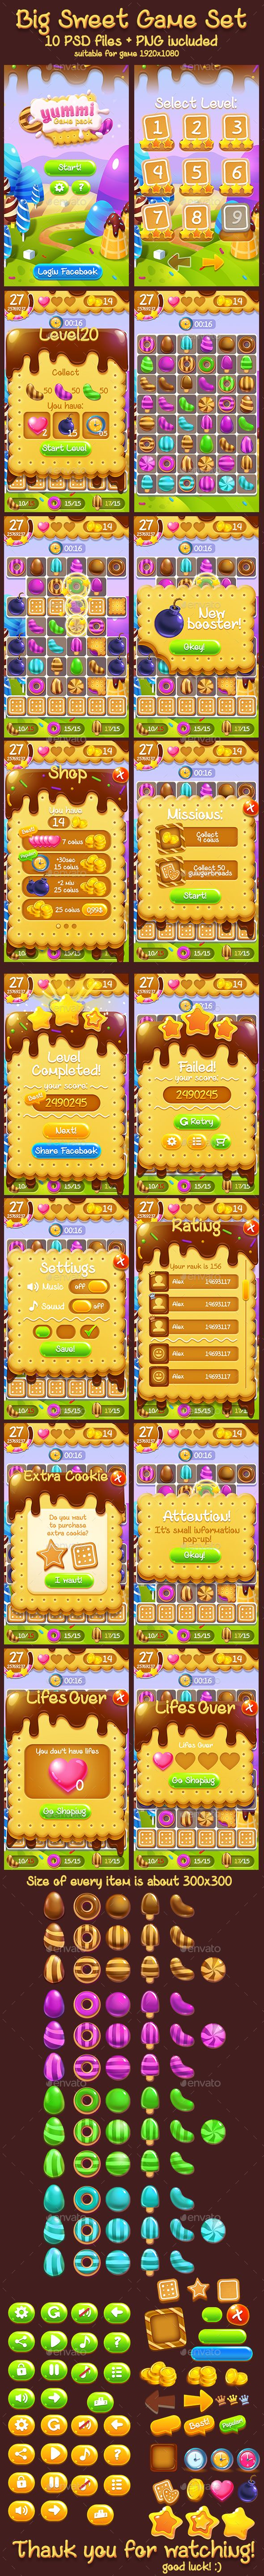 Cookie Chocolate Sweet Full Game Set - Game Kits Game Assets